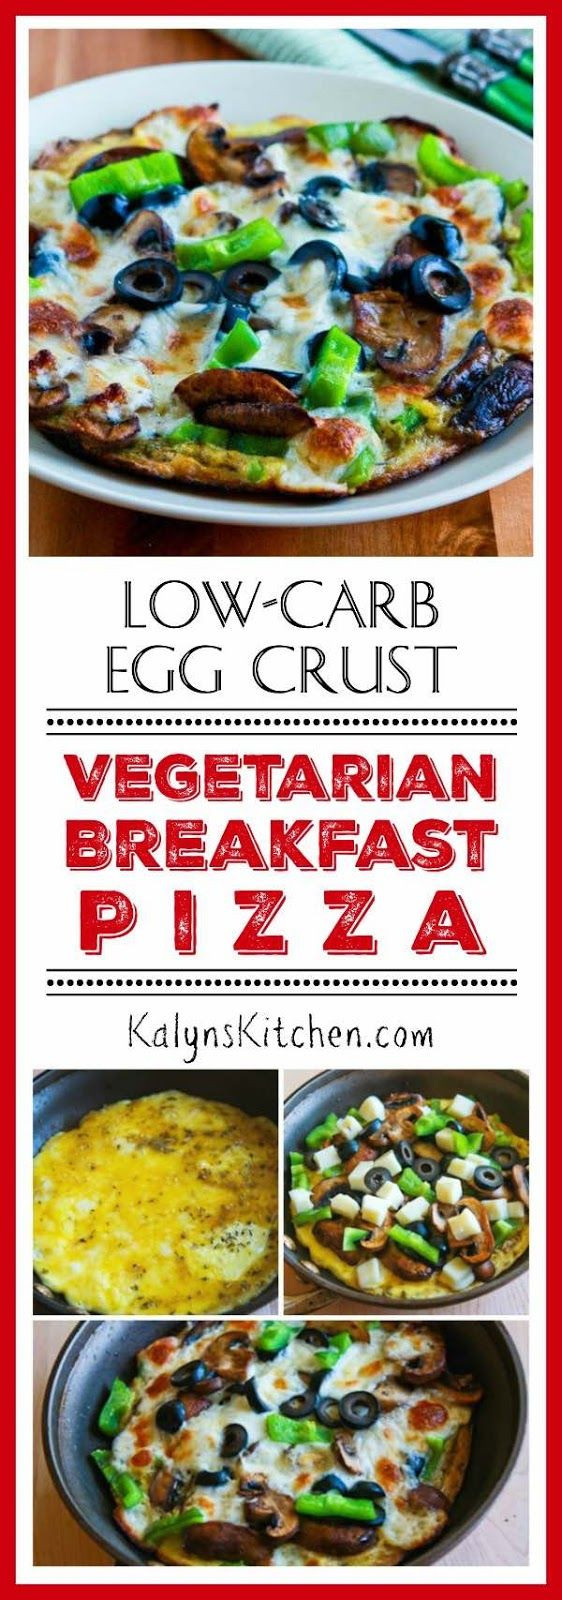 Low Carb Breakfast Pizza  Low Carb Egg Crust Ve arian Breakfast Pizza this